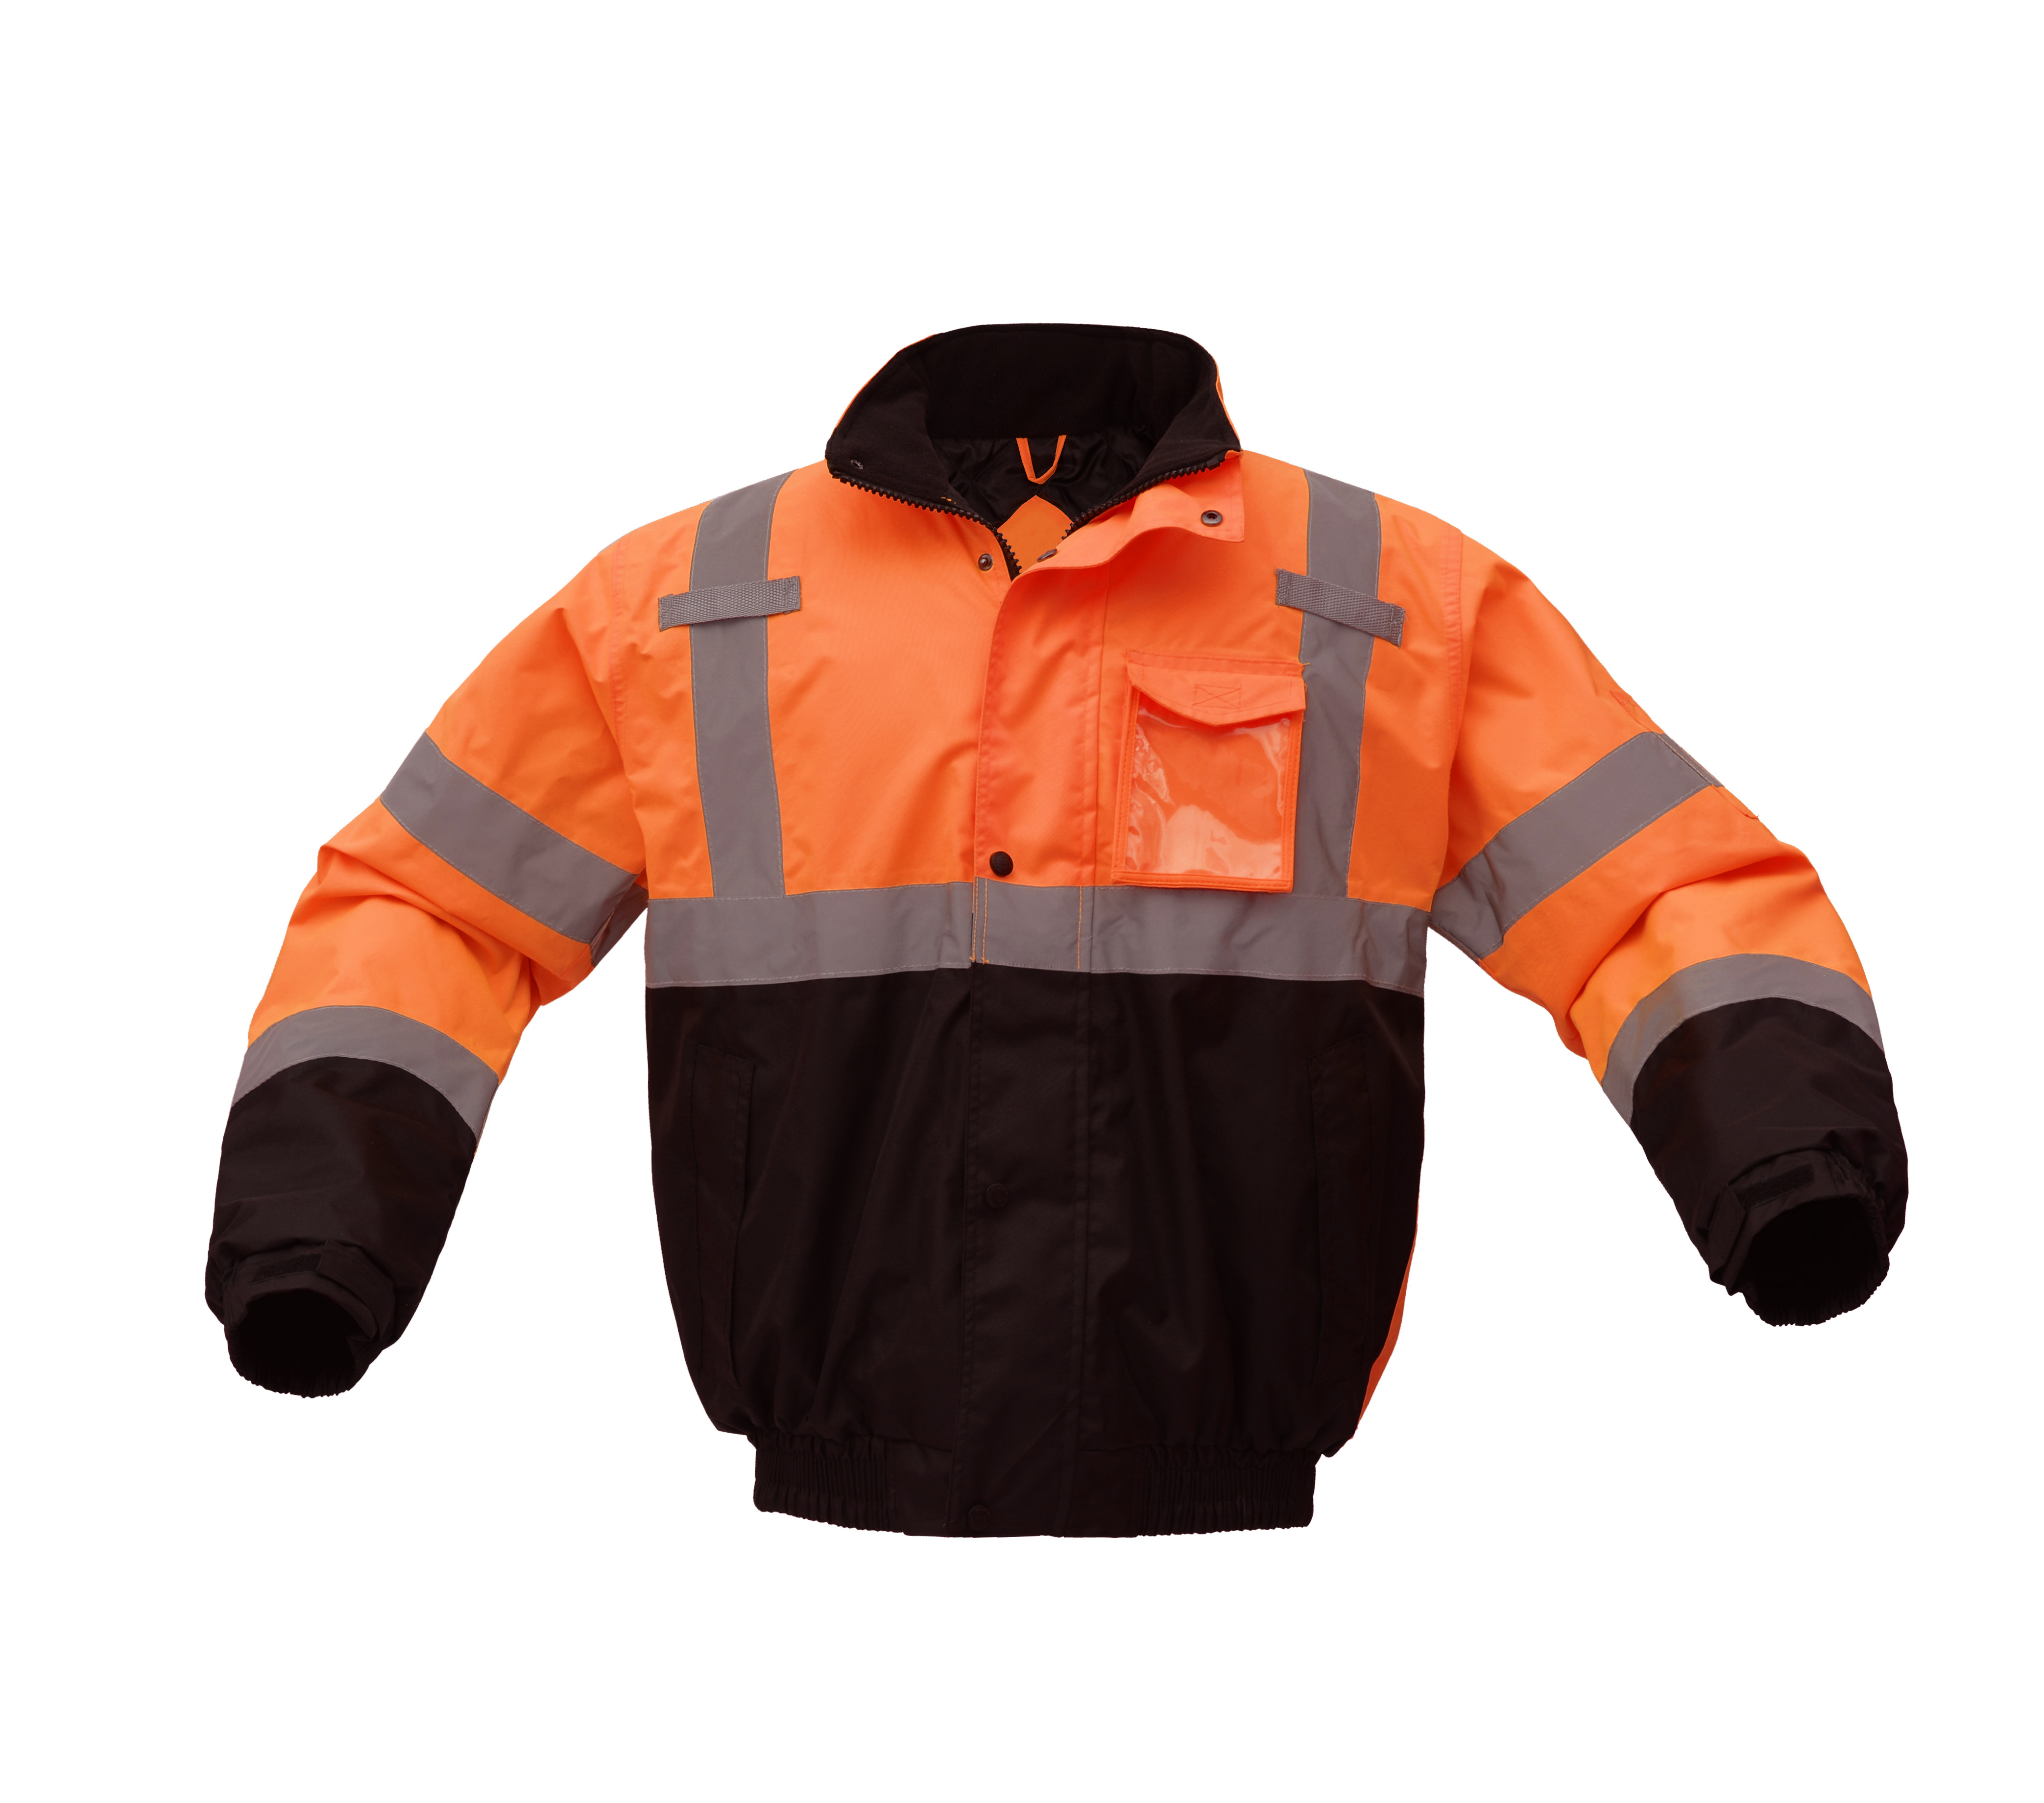 Hi-Vis Orange Two-Tone Class 3 Waterproof Quilt-lined Bomber Safety Jacket-GSS Safety